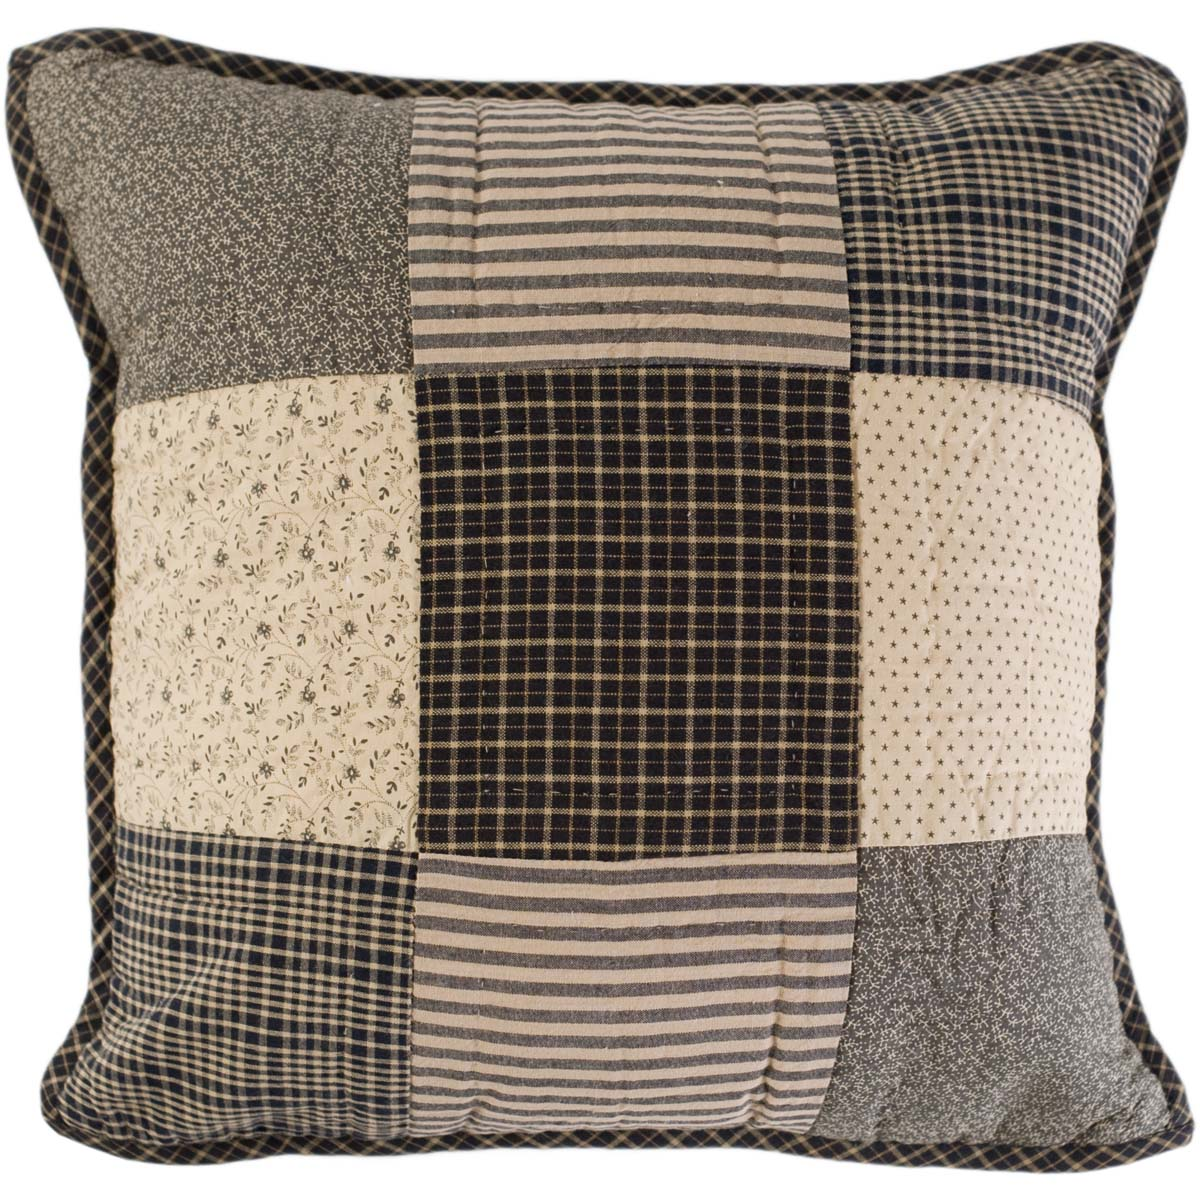 Country Black Primitive Bedding Prim Grove Cotton Hand Quilted Patchwork Square Pillow (Pillow Cover, Pillow Insert)